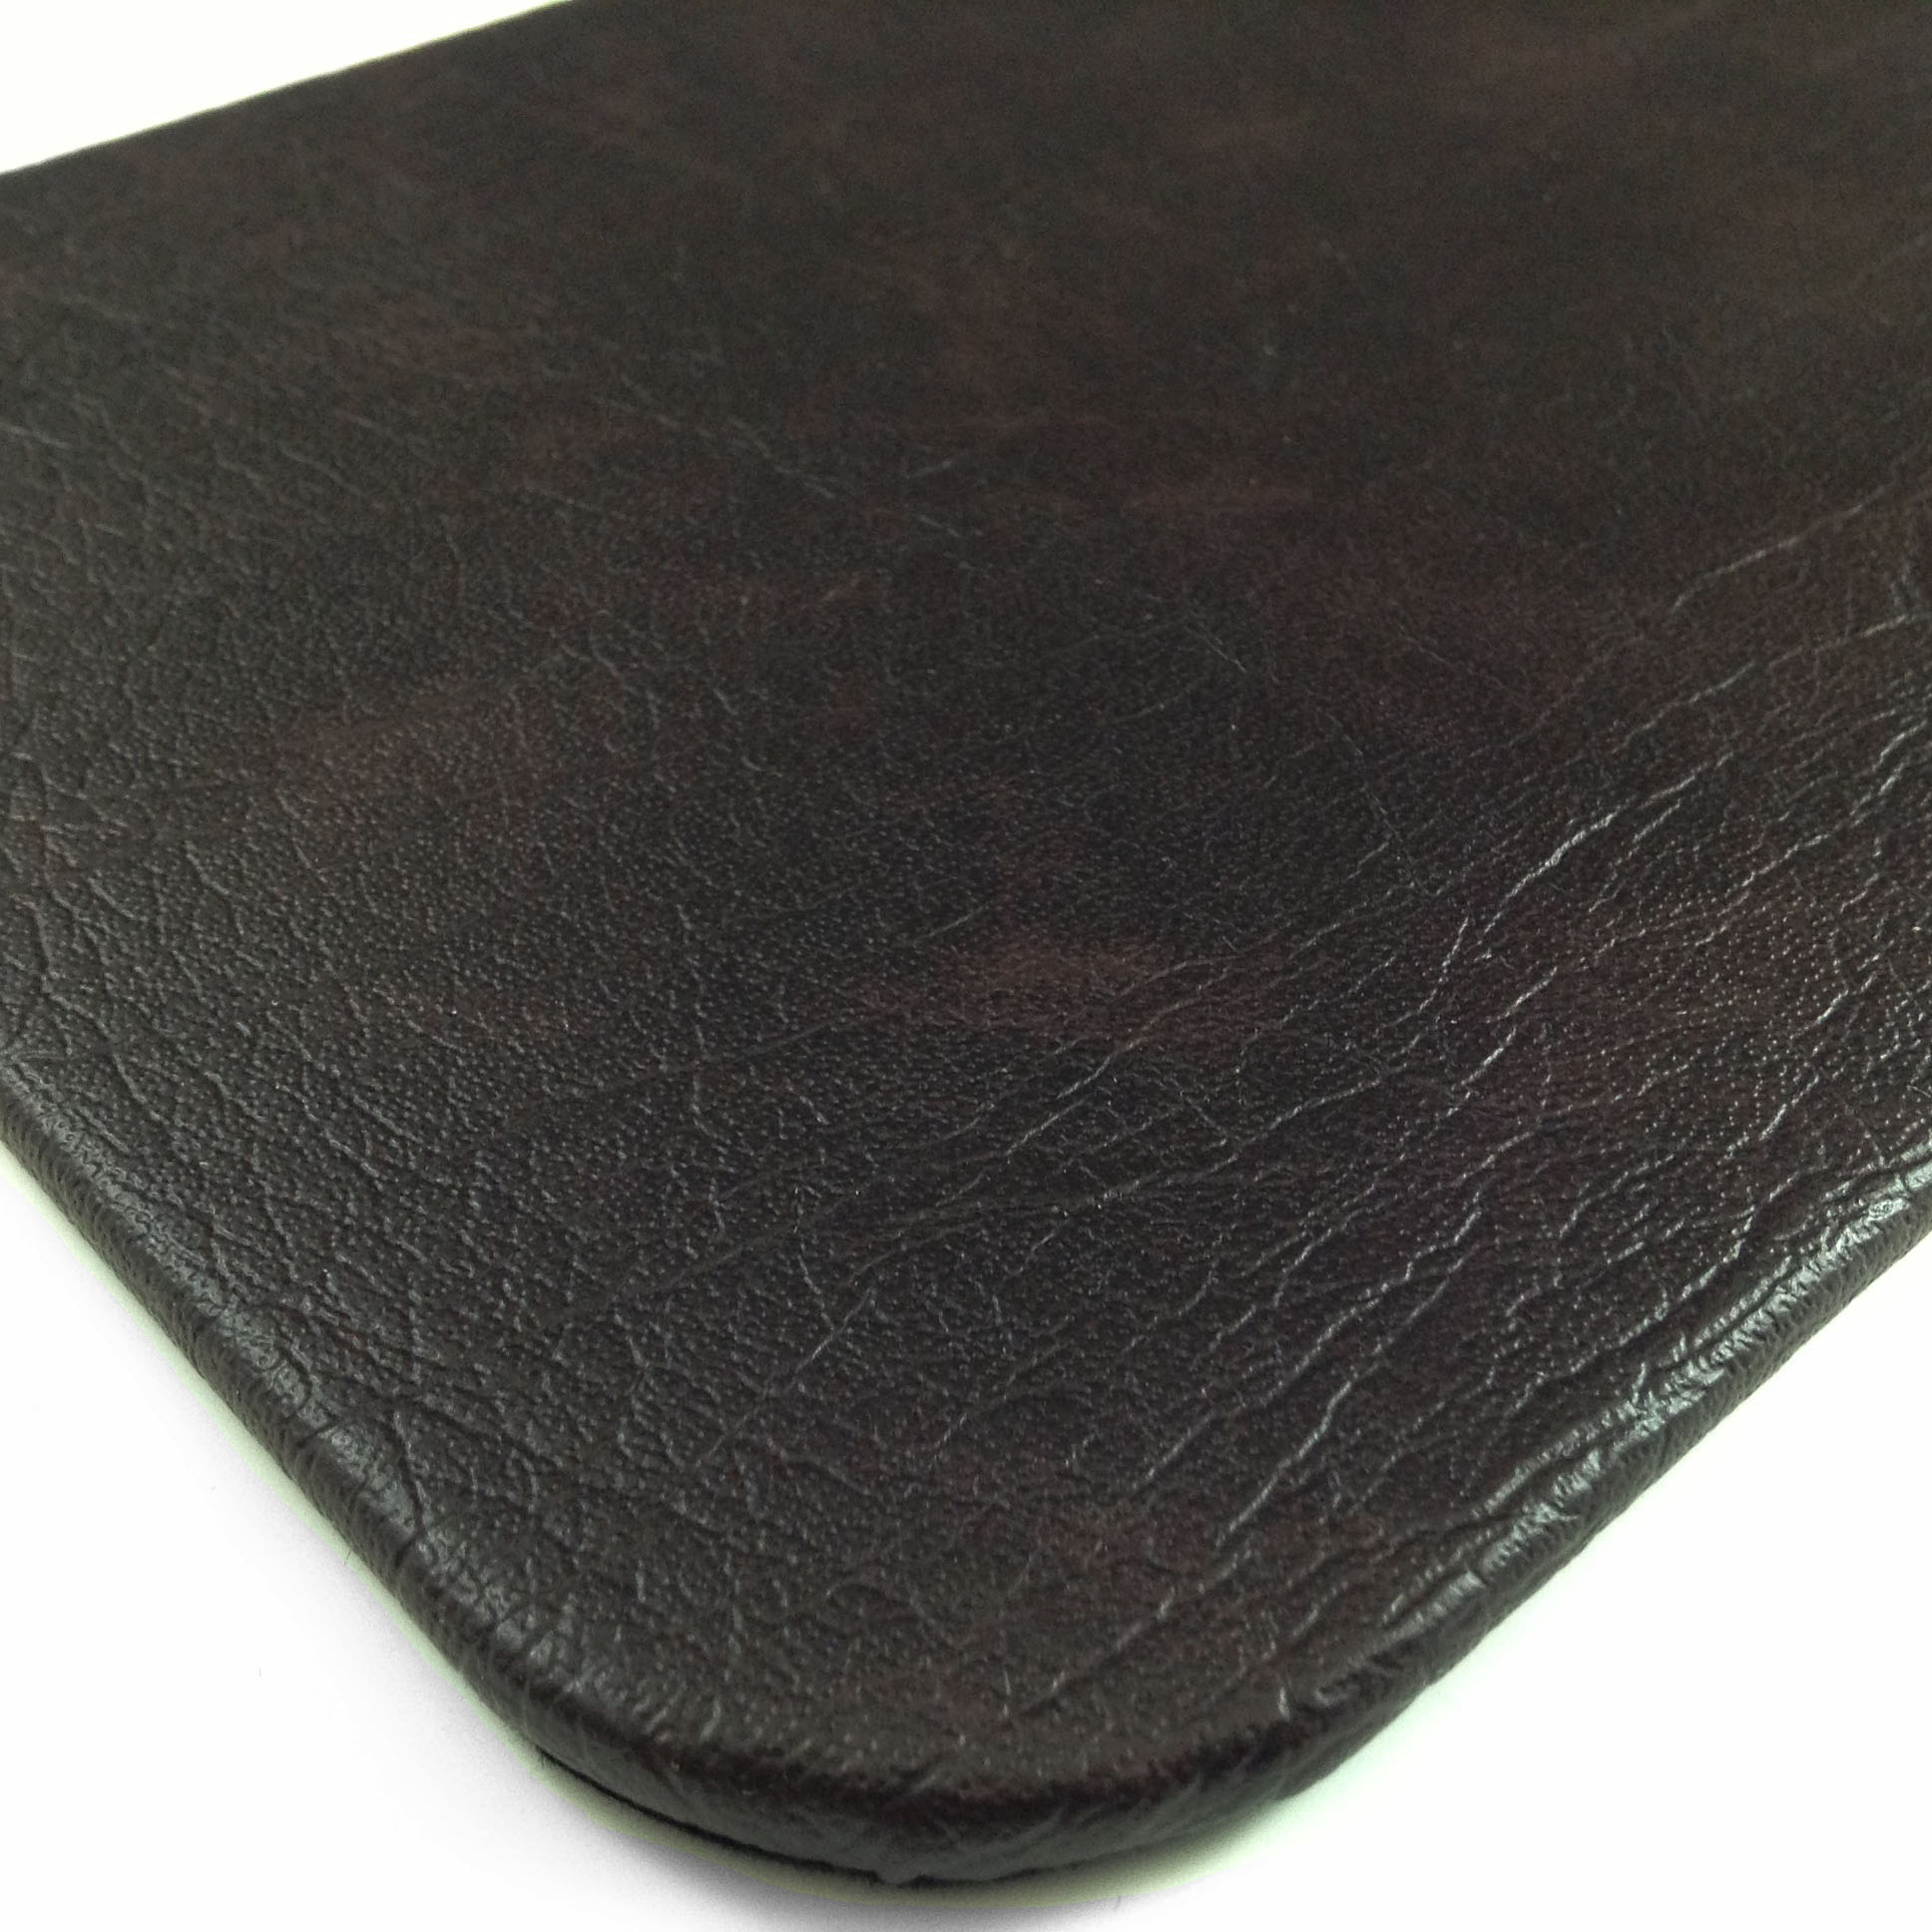 Brownvinyldeskmat Blackvinyldeskmat Greenvinyldeskmat